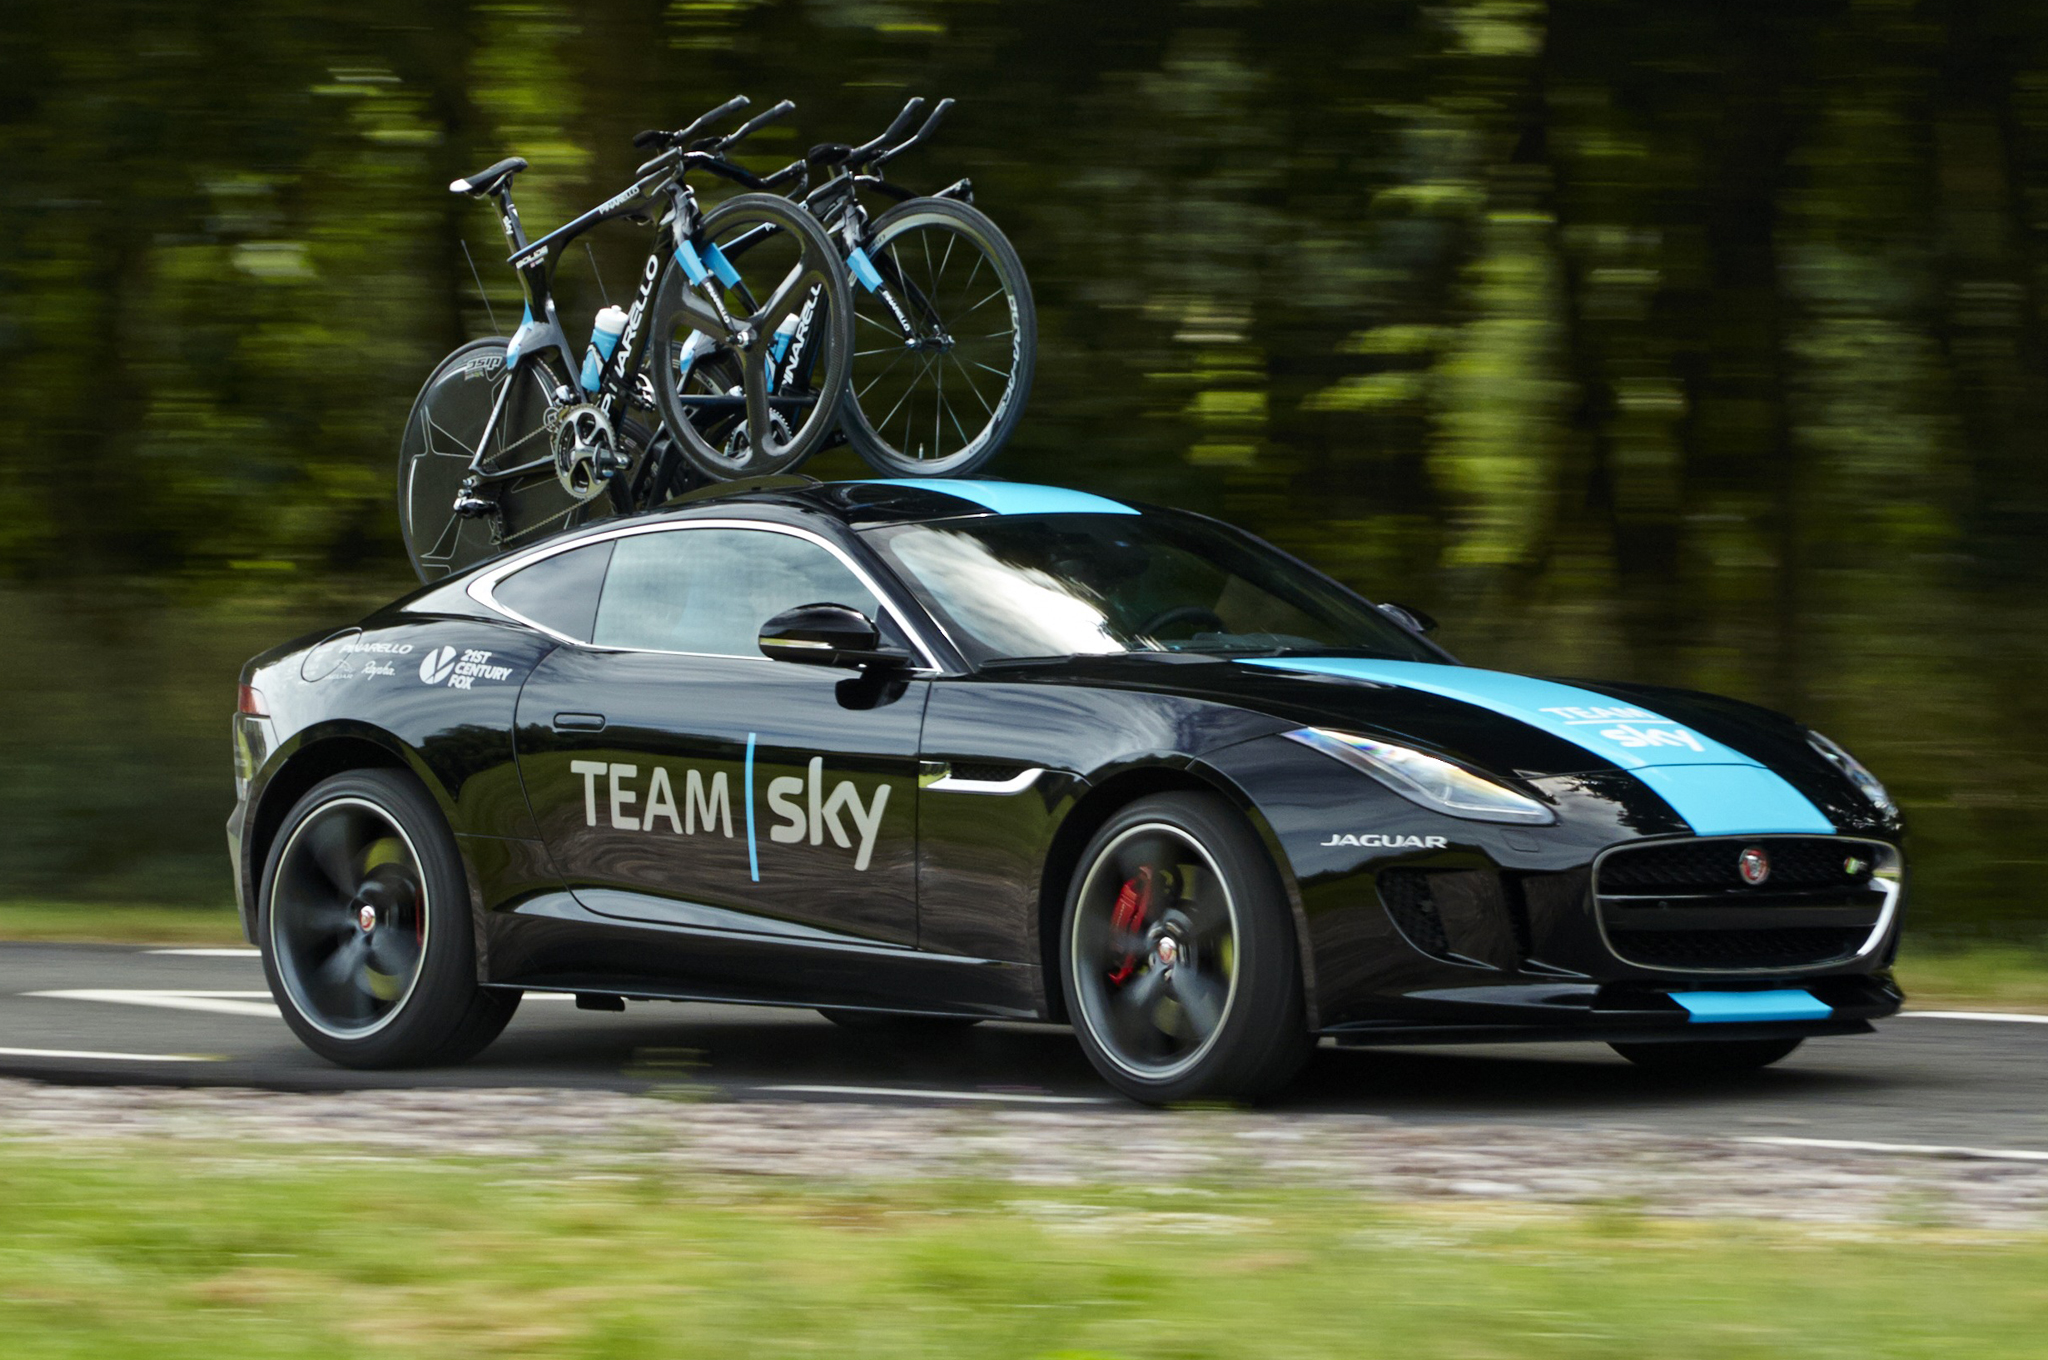 2015-jaguar-f-type-coupe-r-for-sky-team-front-right-side-action-shot.jpg